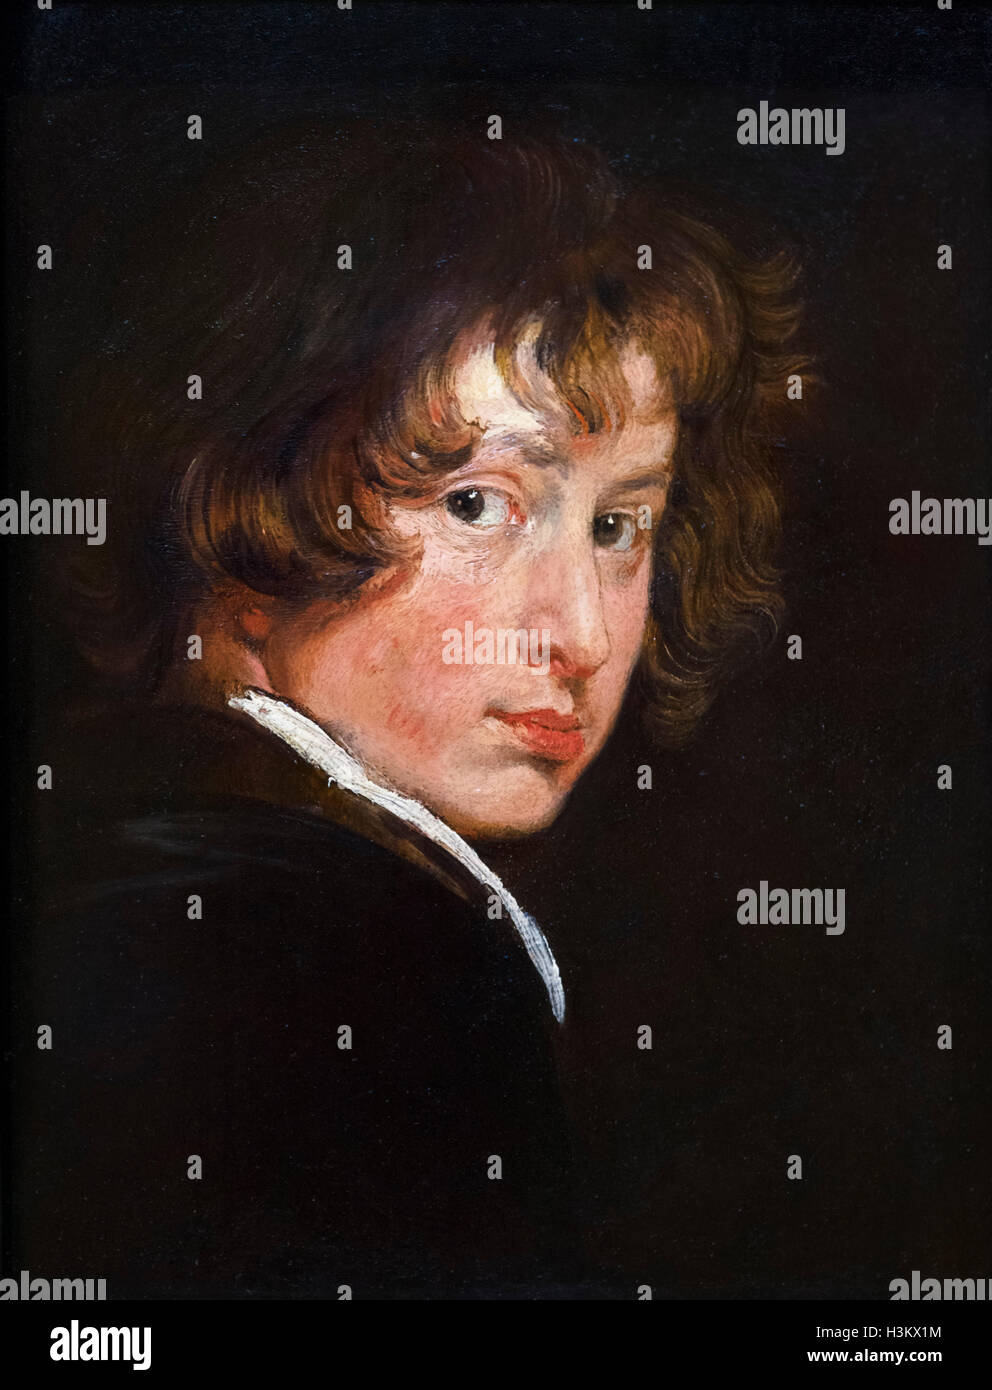 The Flemish artist, Sir Anthony van Dyck (1599 -1641), self-portrait at the age of around 15, oil on wood, c.1614. - Stock Image